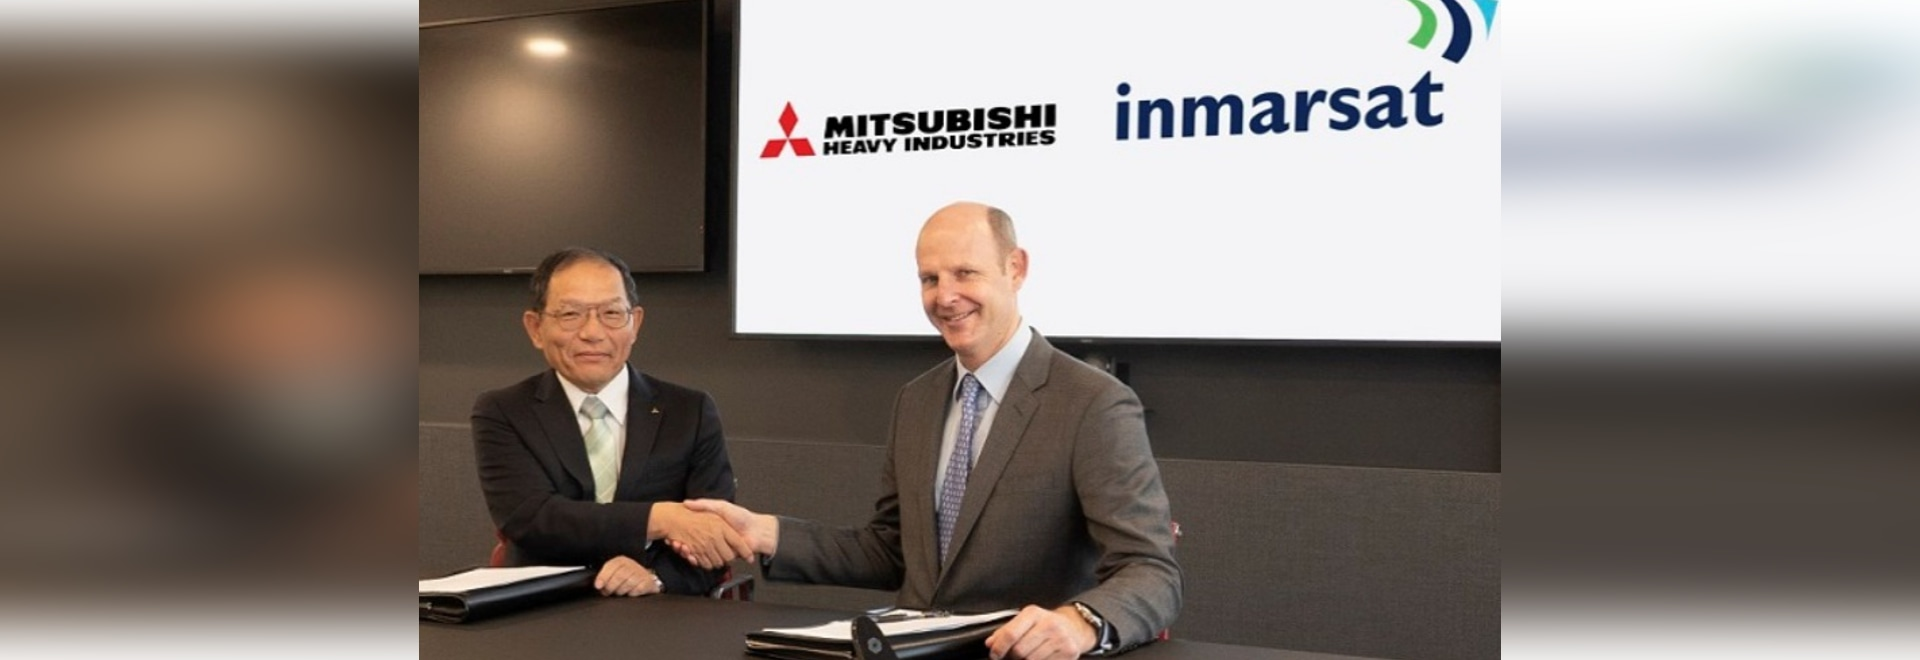 Inmarsat selects MHI's H3 vehicle to launch new satellite